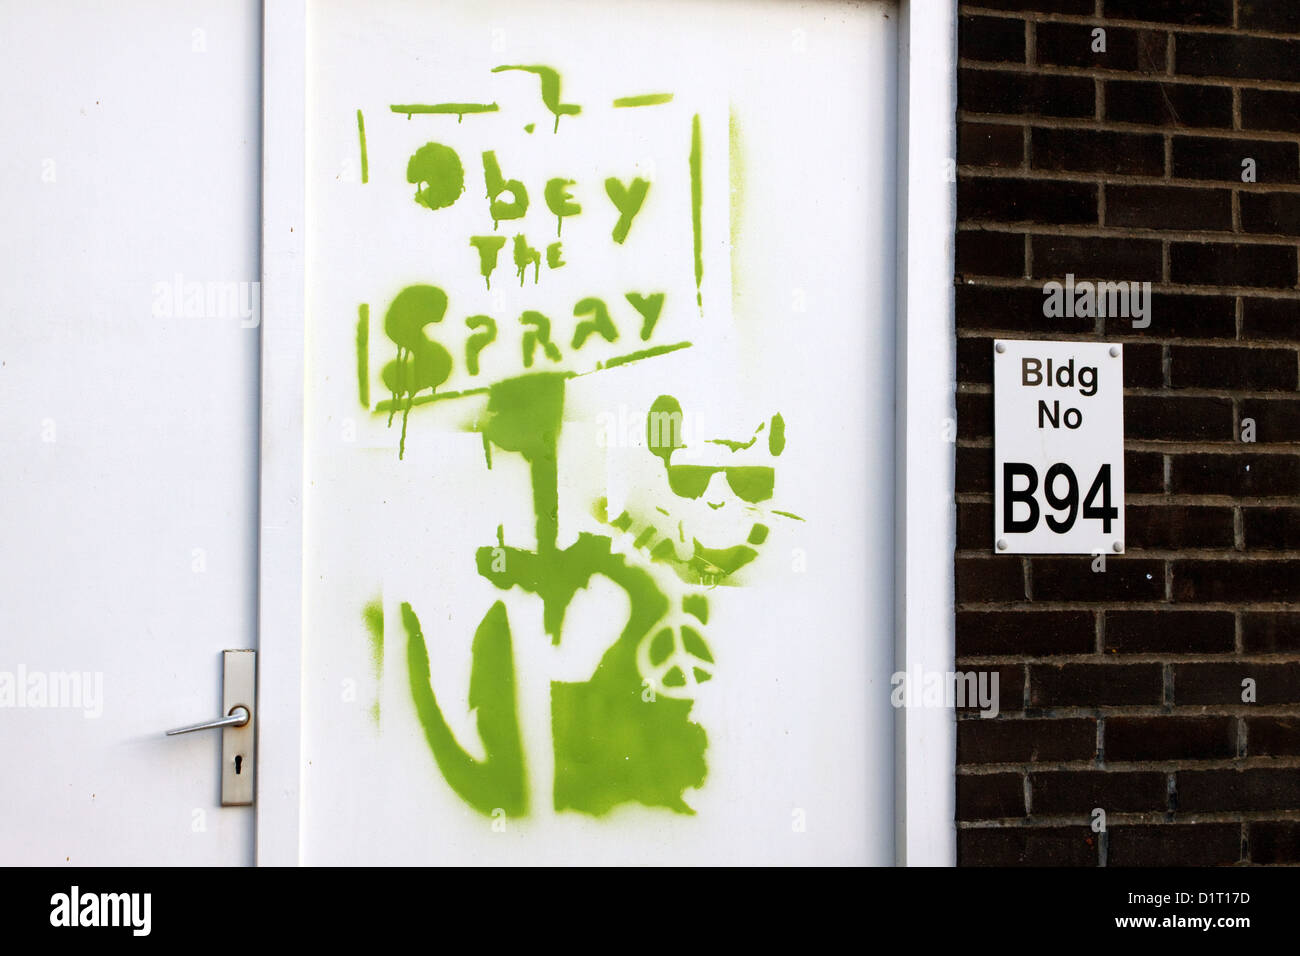 Green stencilled Banksy style placard rat with CND badge and sunglasses holding a sign 'Obey the Spray' - Stock Image